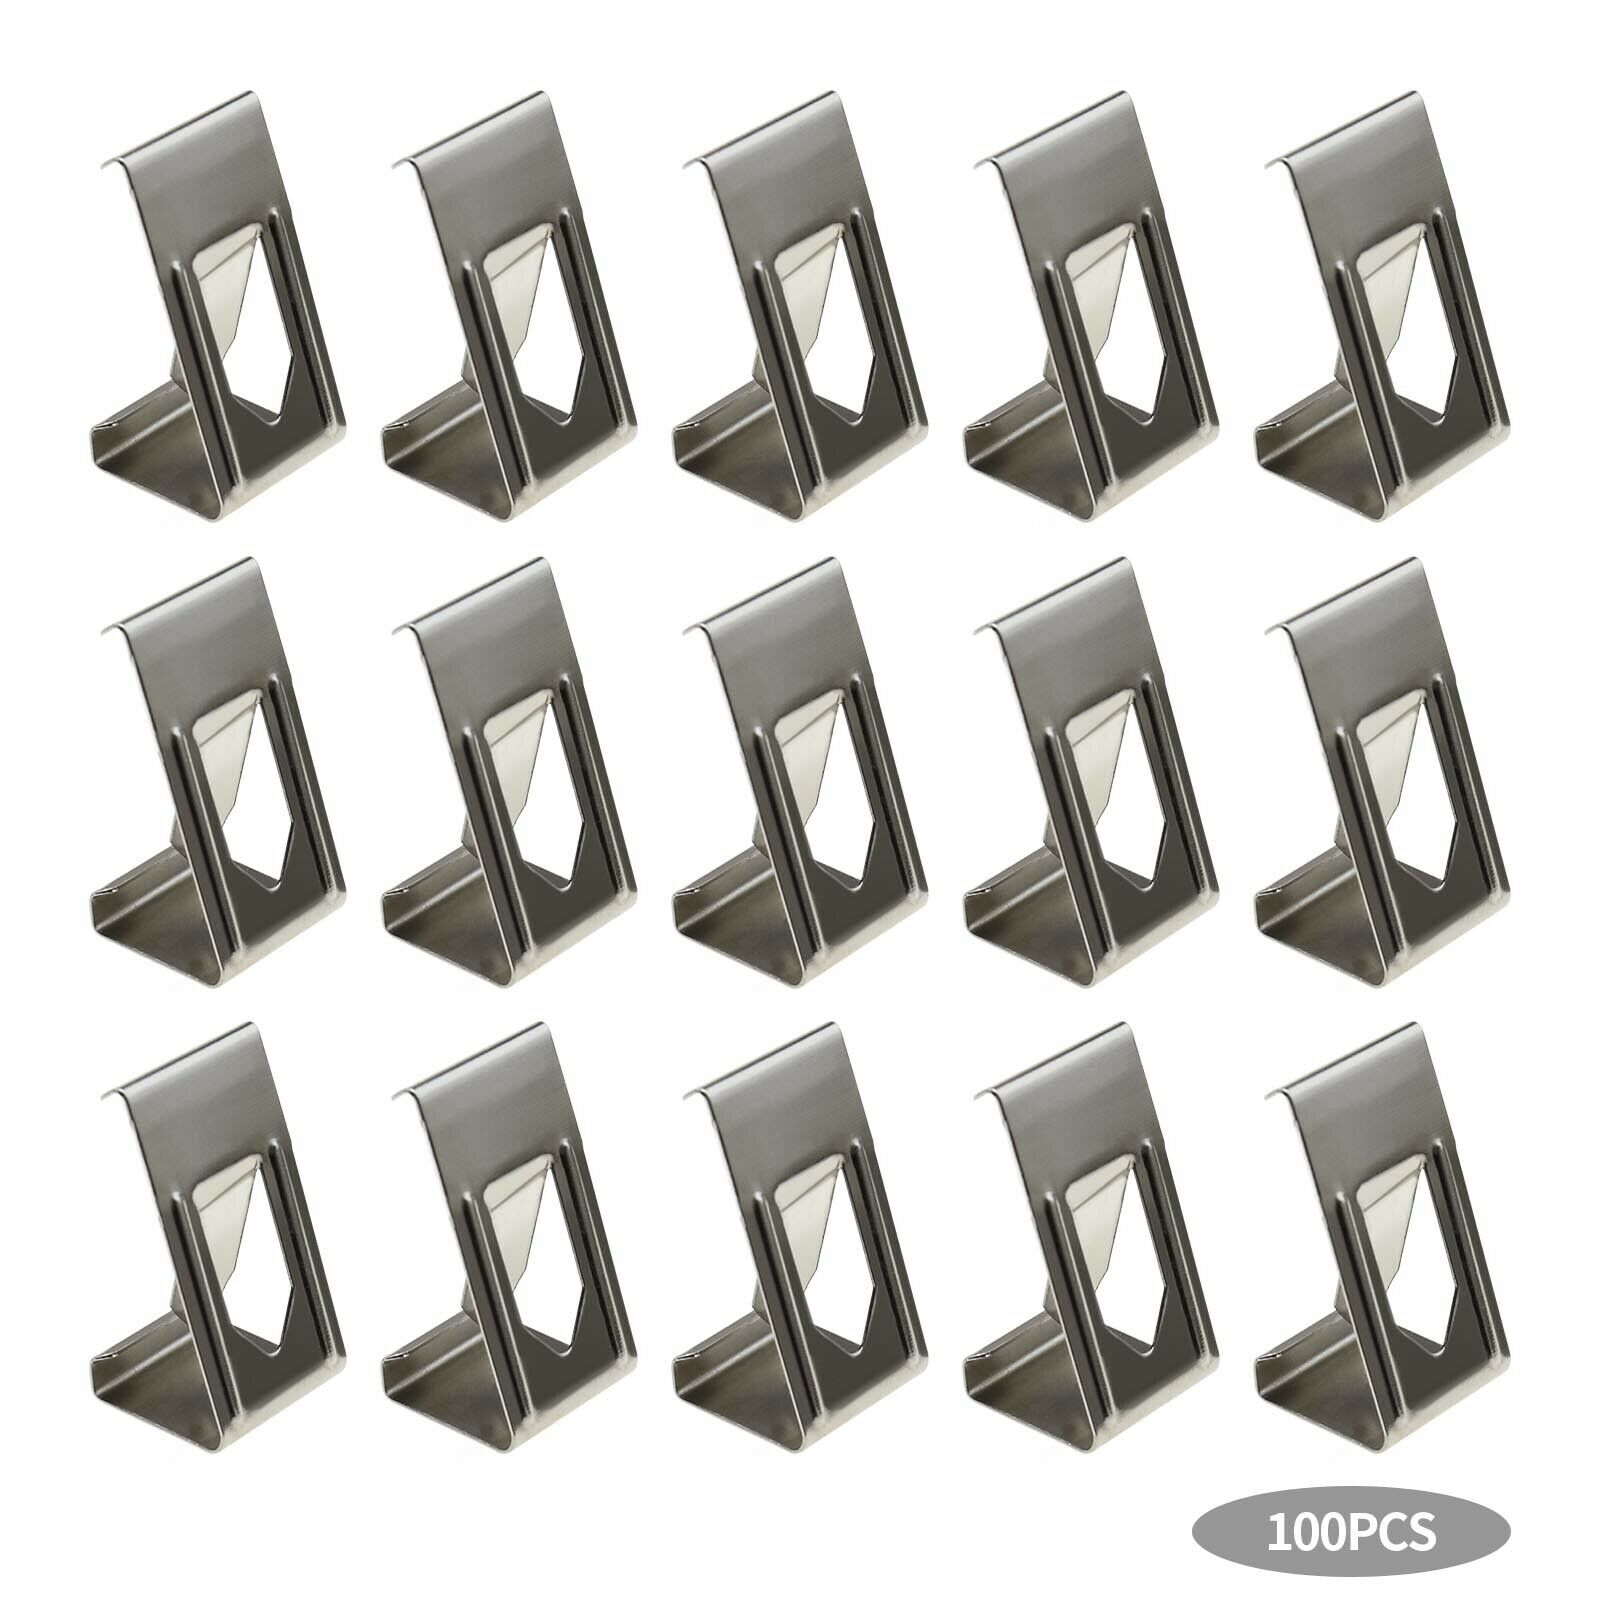 Silver Tone 3D Printer Glass Bed Clips Picture Frame Metal Holder Clamps x100